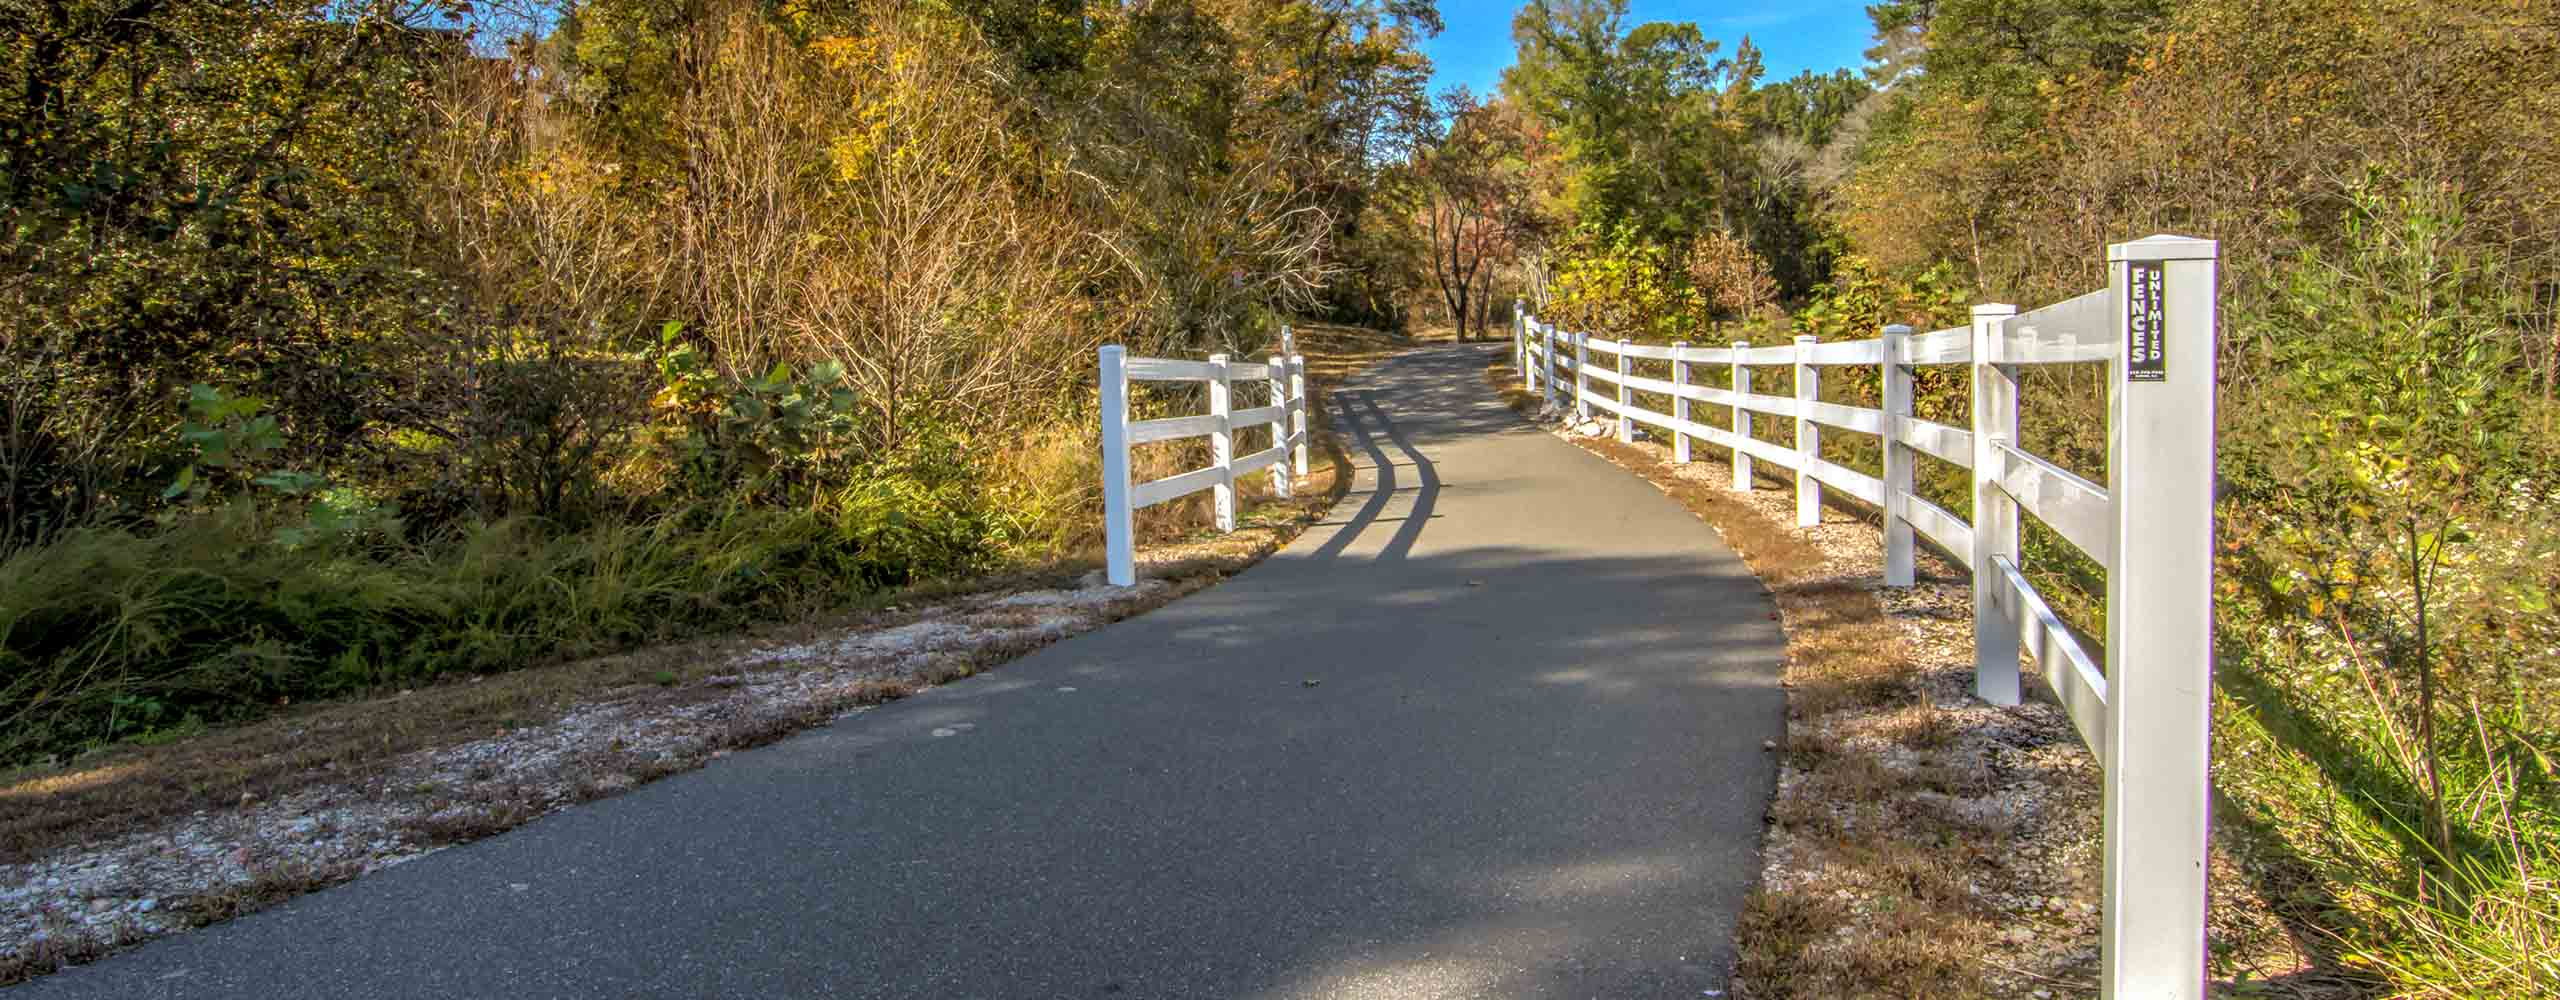 Neuse River Greenway 6